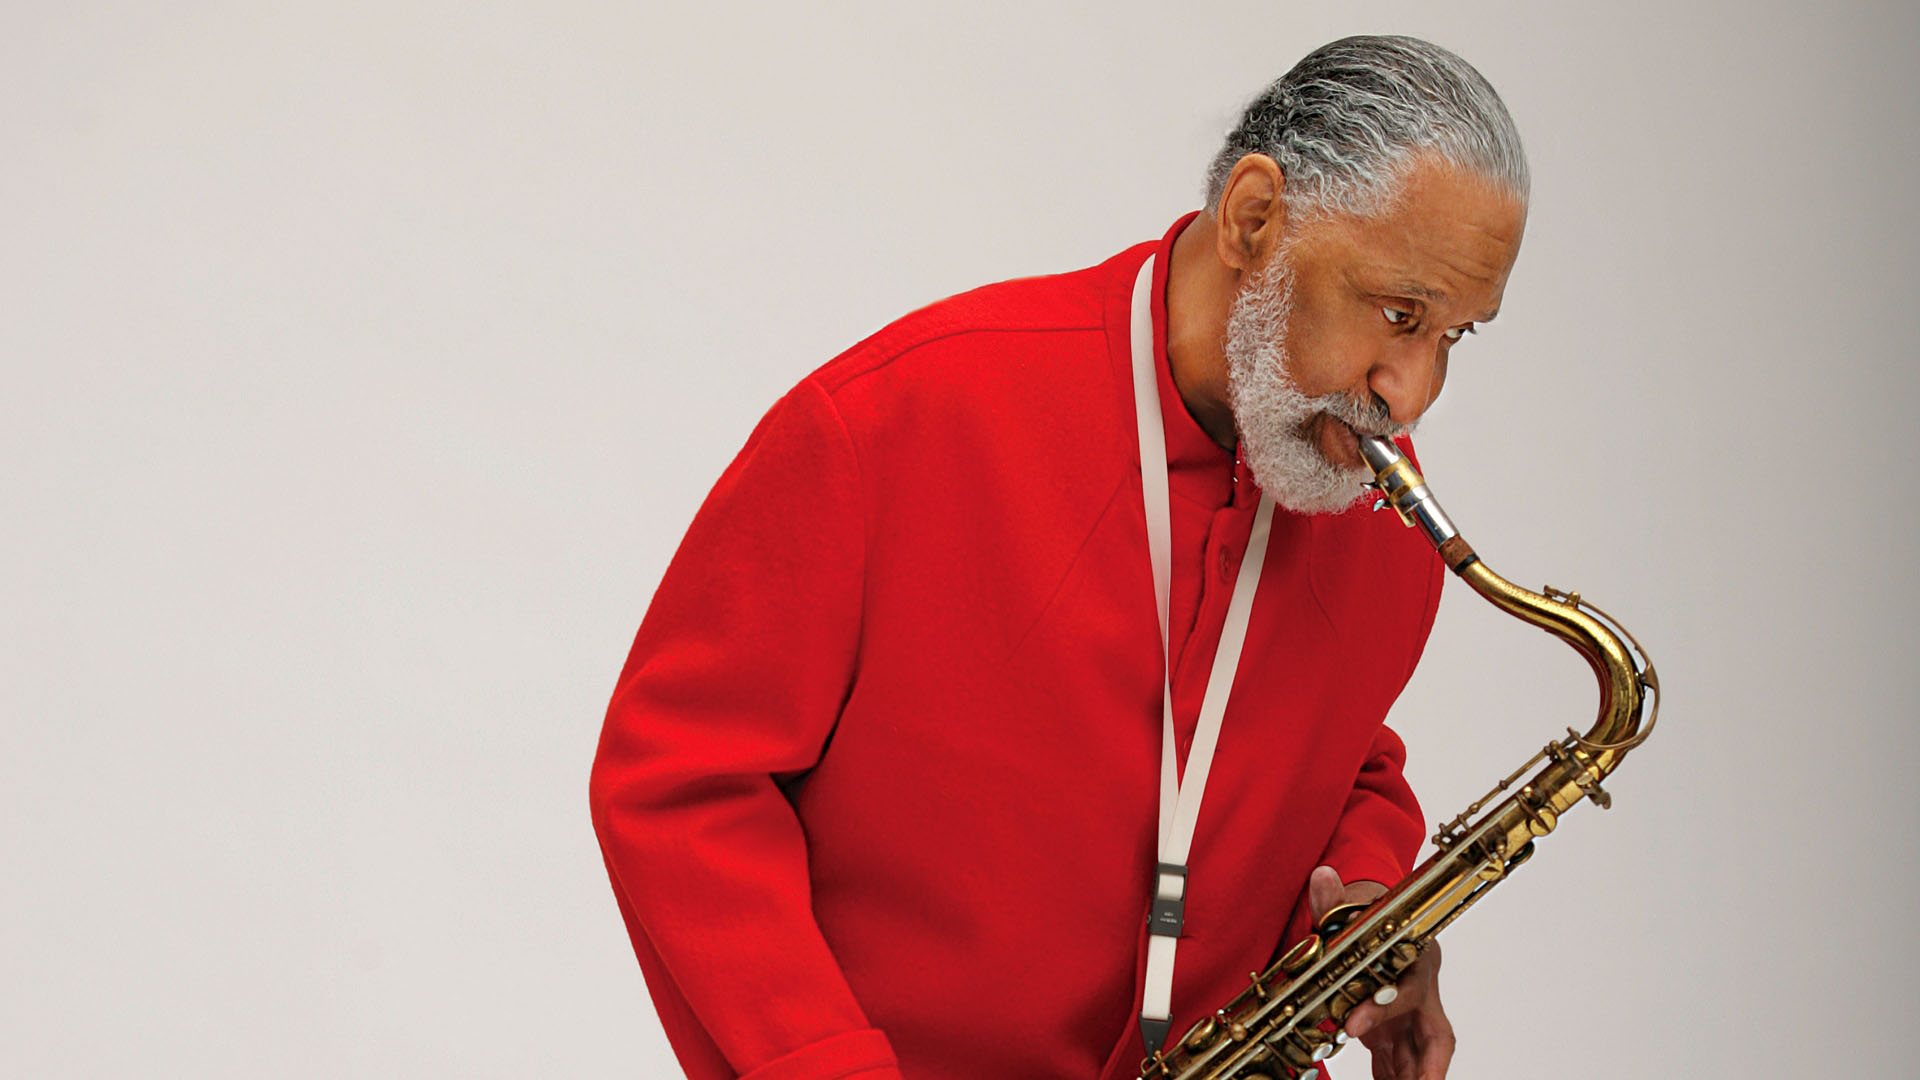 © Sonny Rollins. All Rights Reserved.